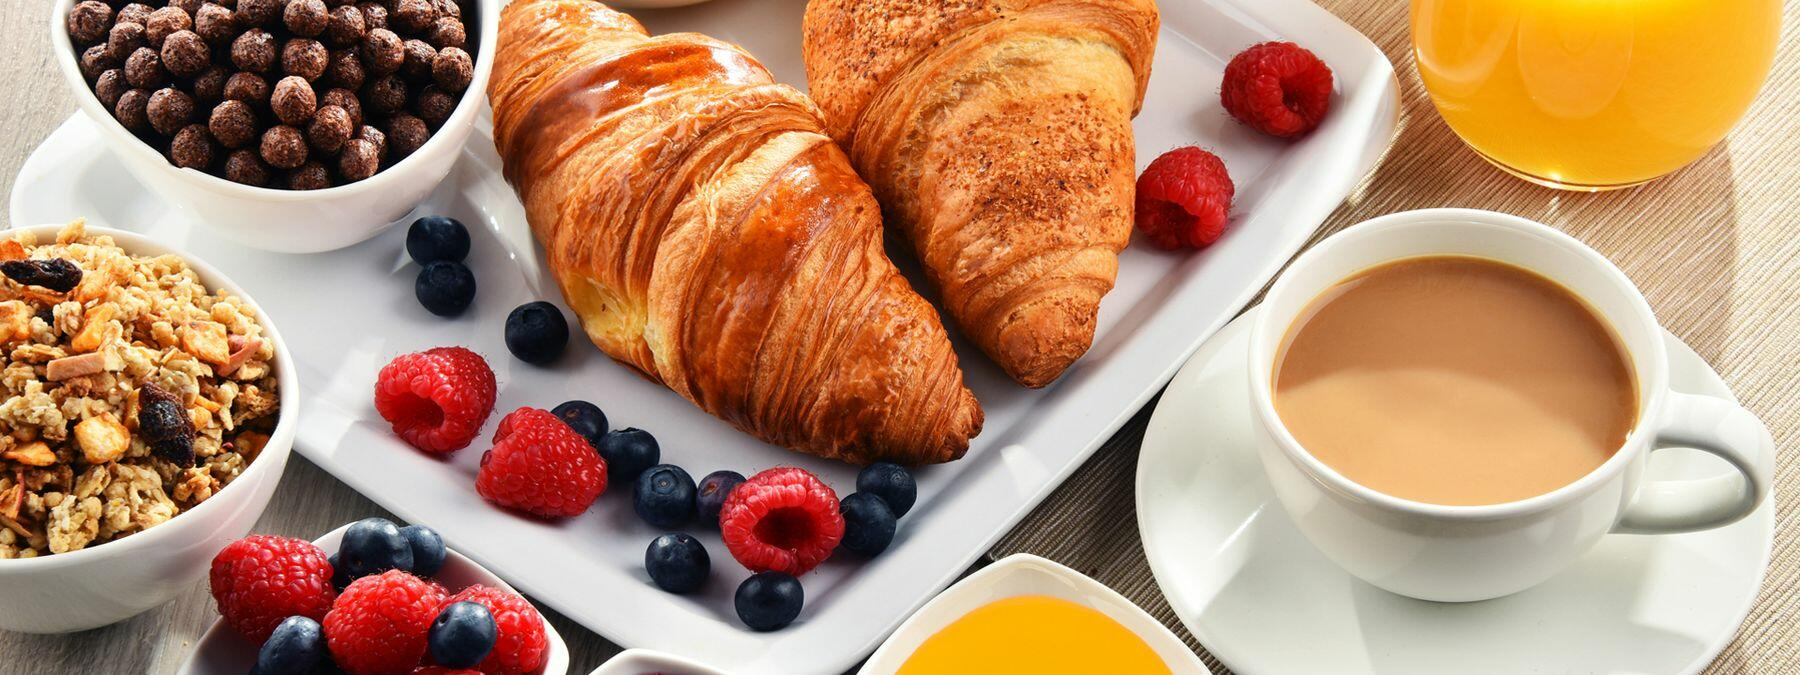 breakfast display with croissants and fruit